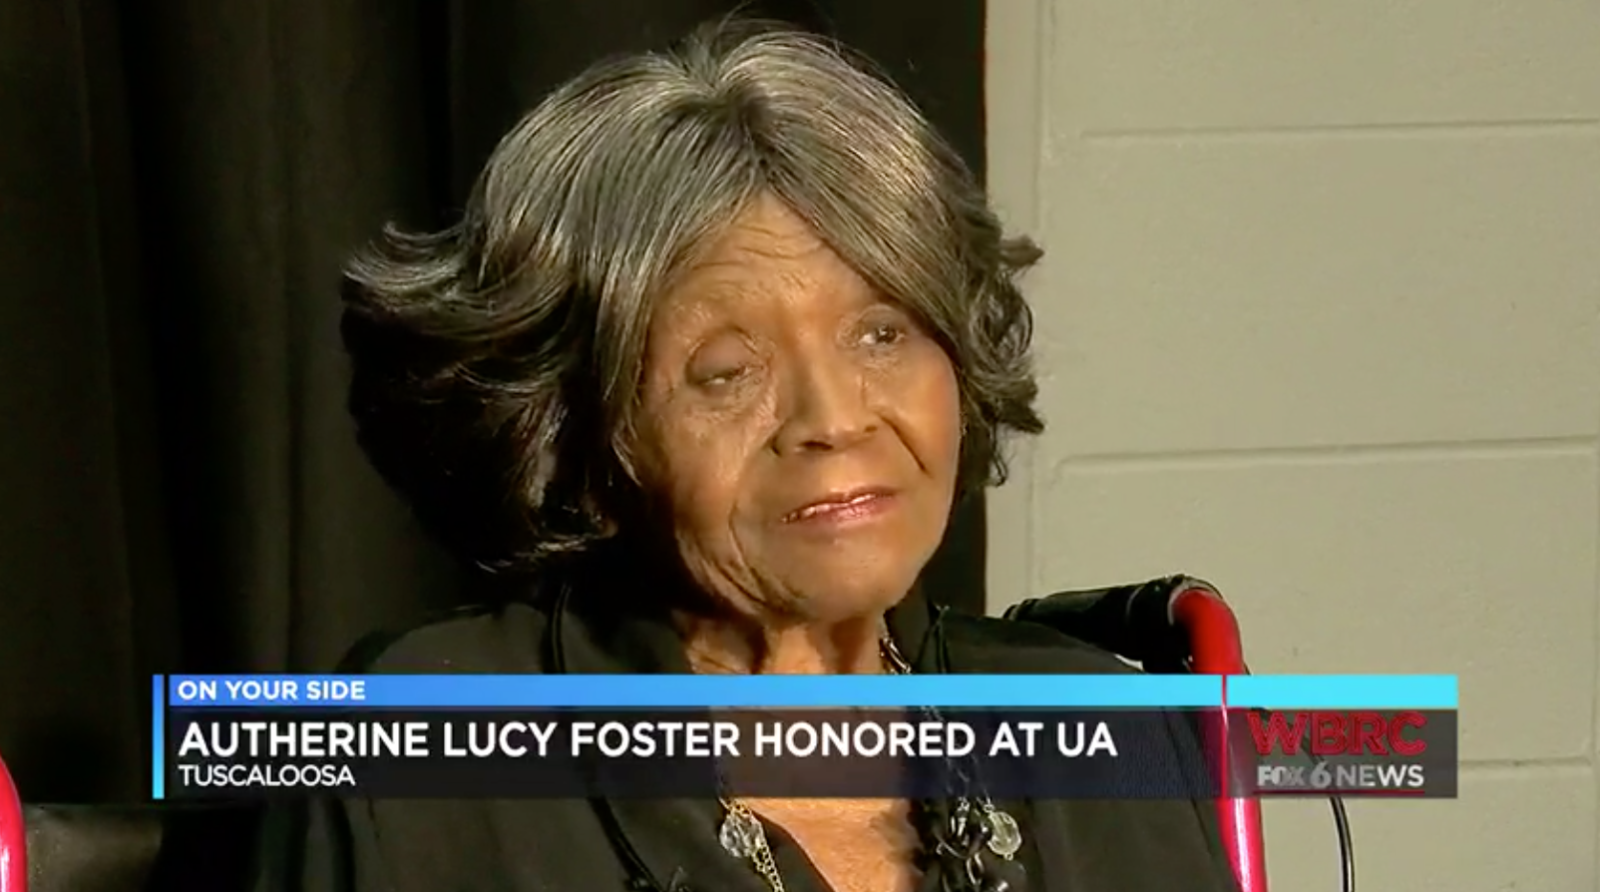 University of Alabama's First Black Student Receives Honorary Degree 63 Years After Expulsion